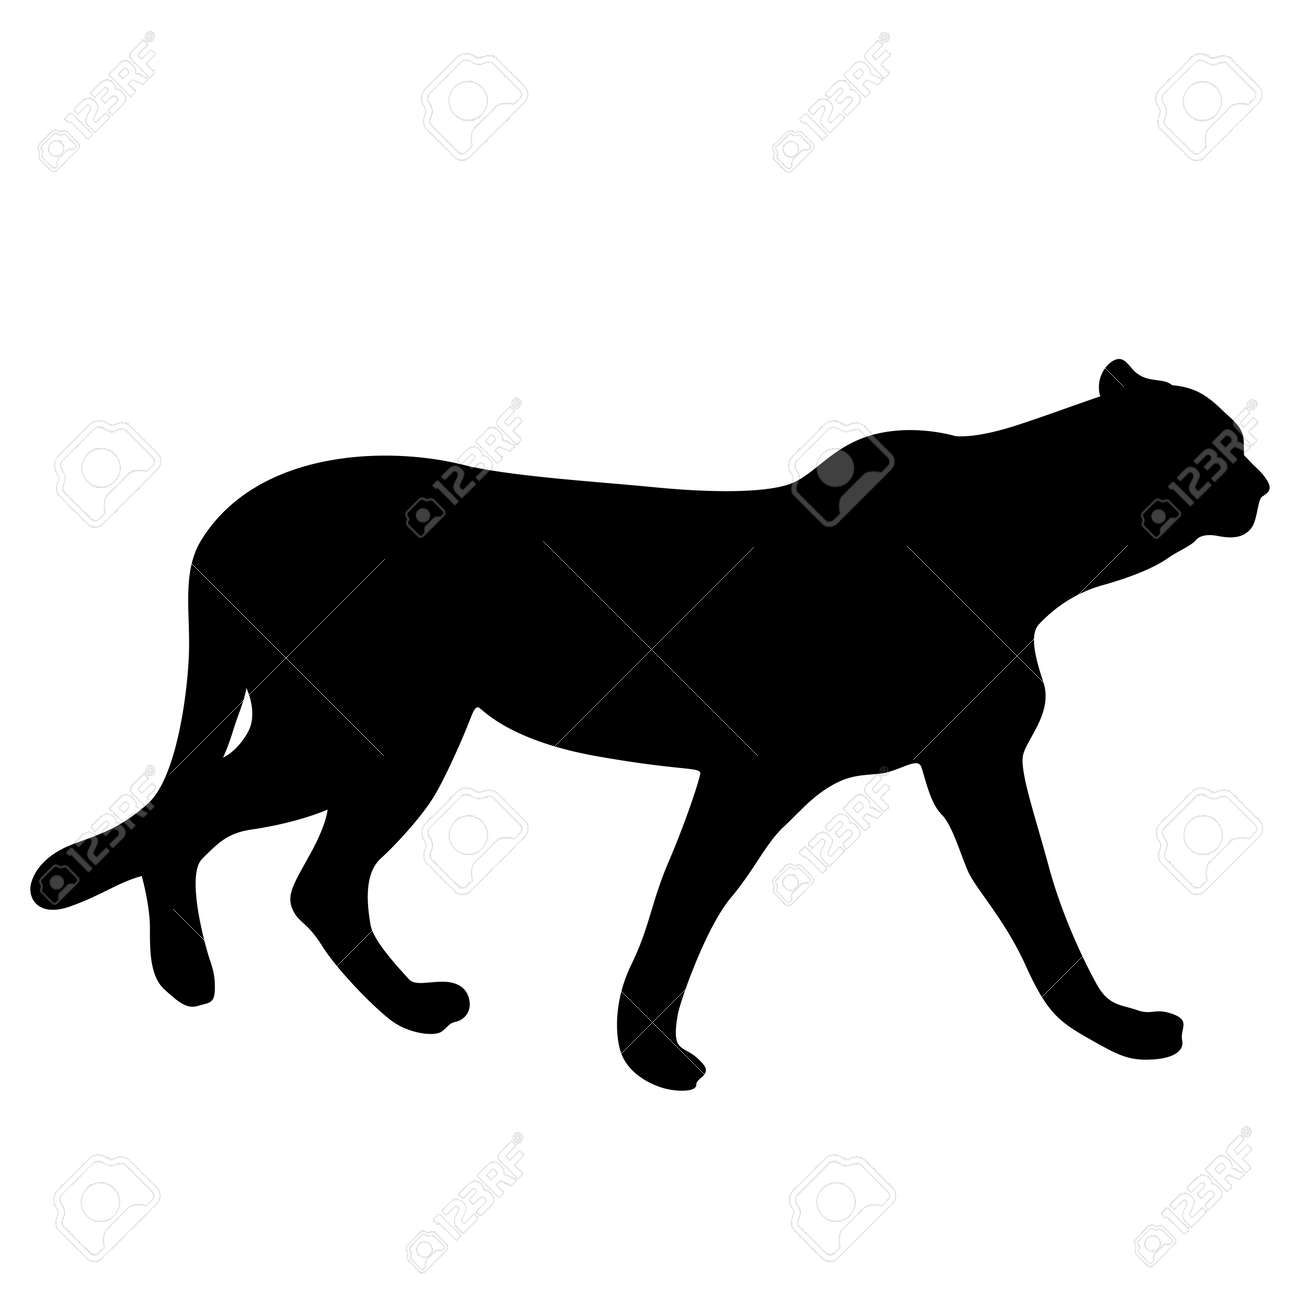 silhouette of the lynx on a white background royalty free cliparts